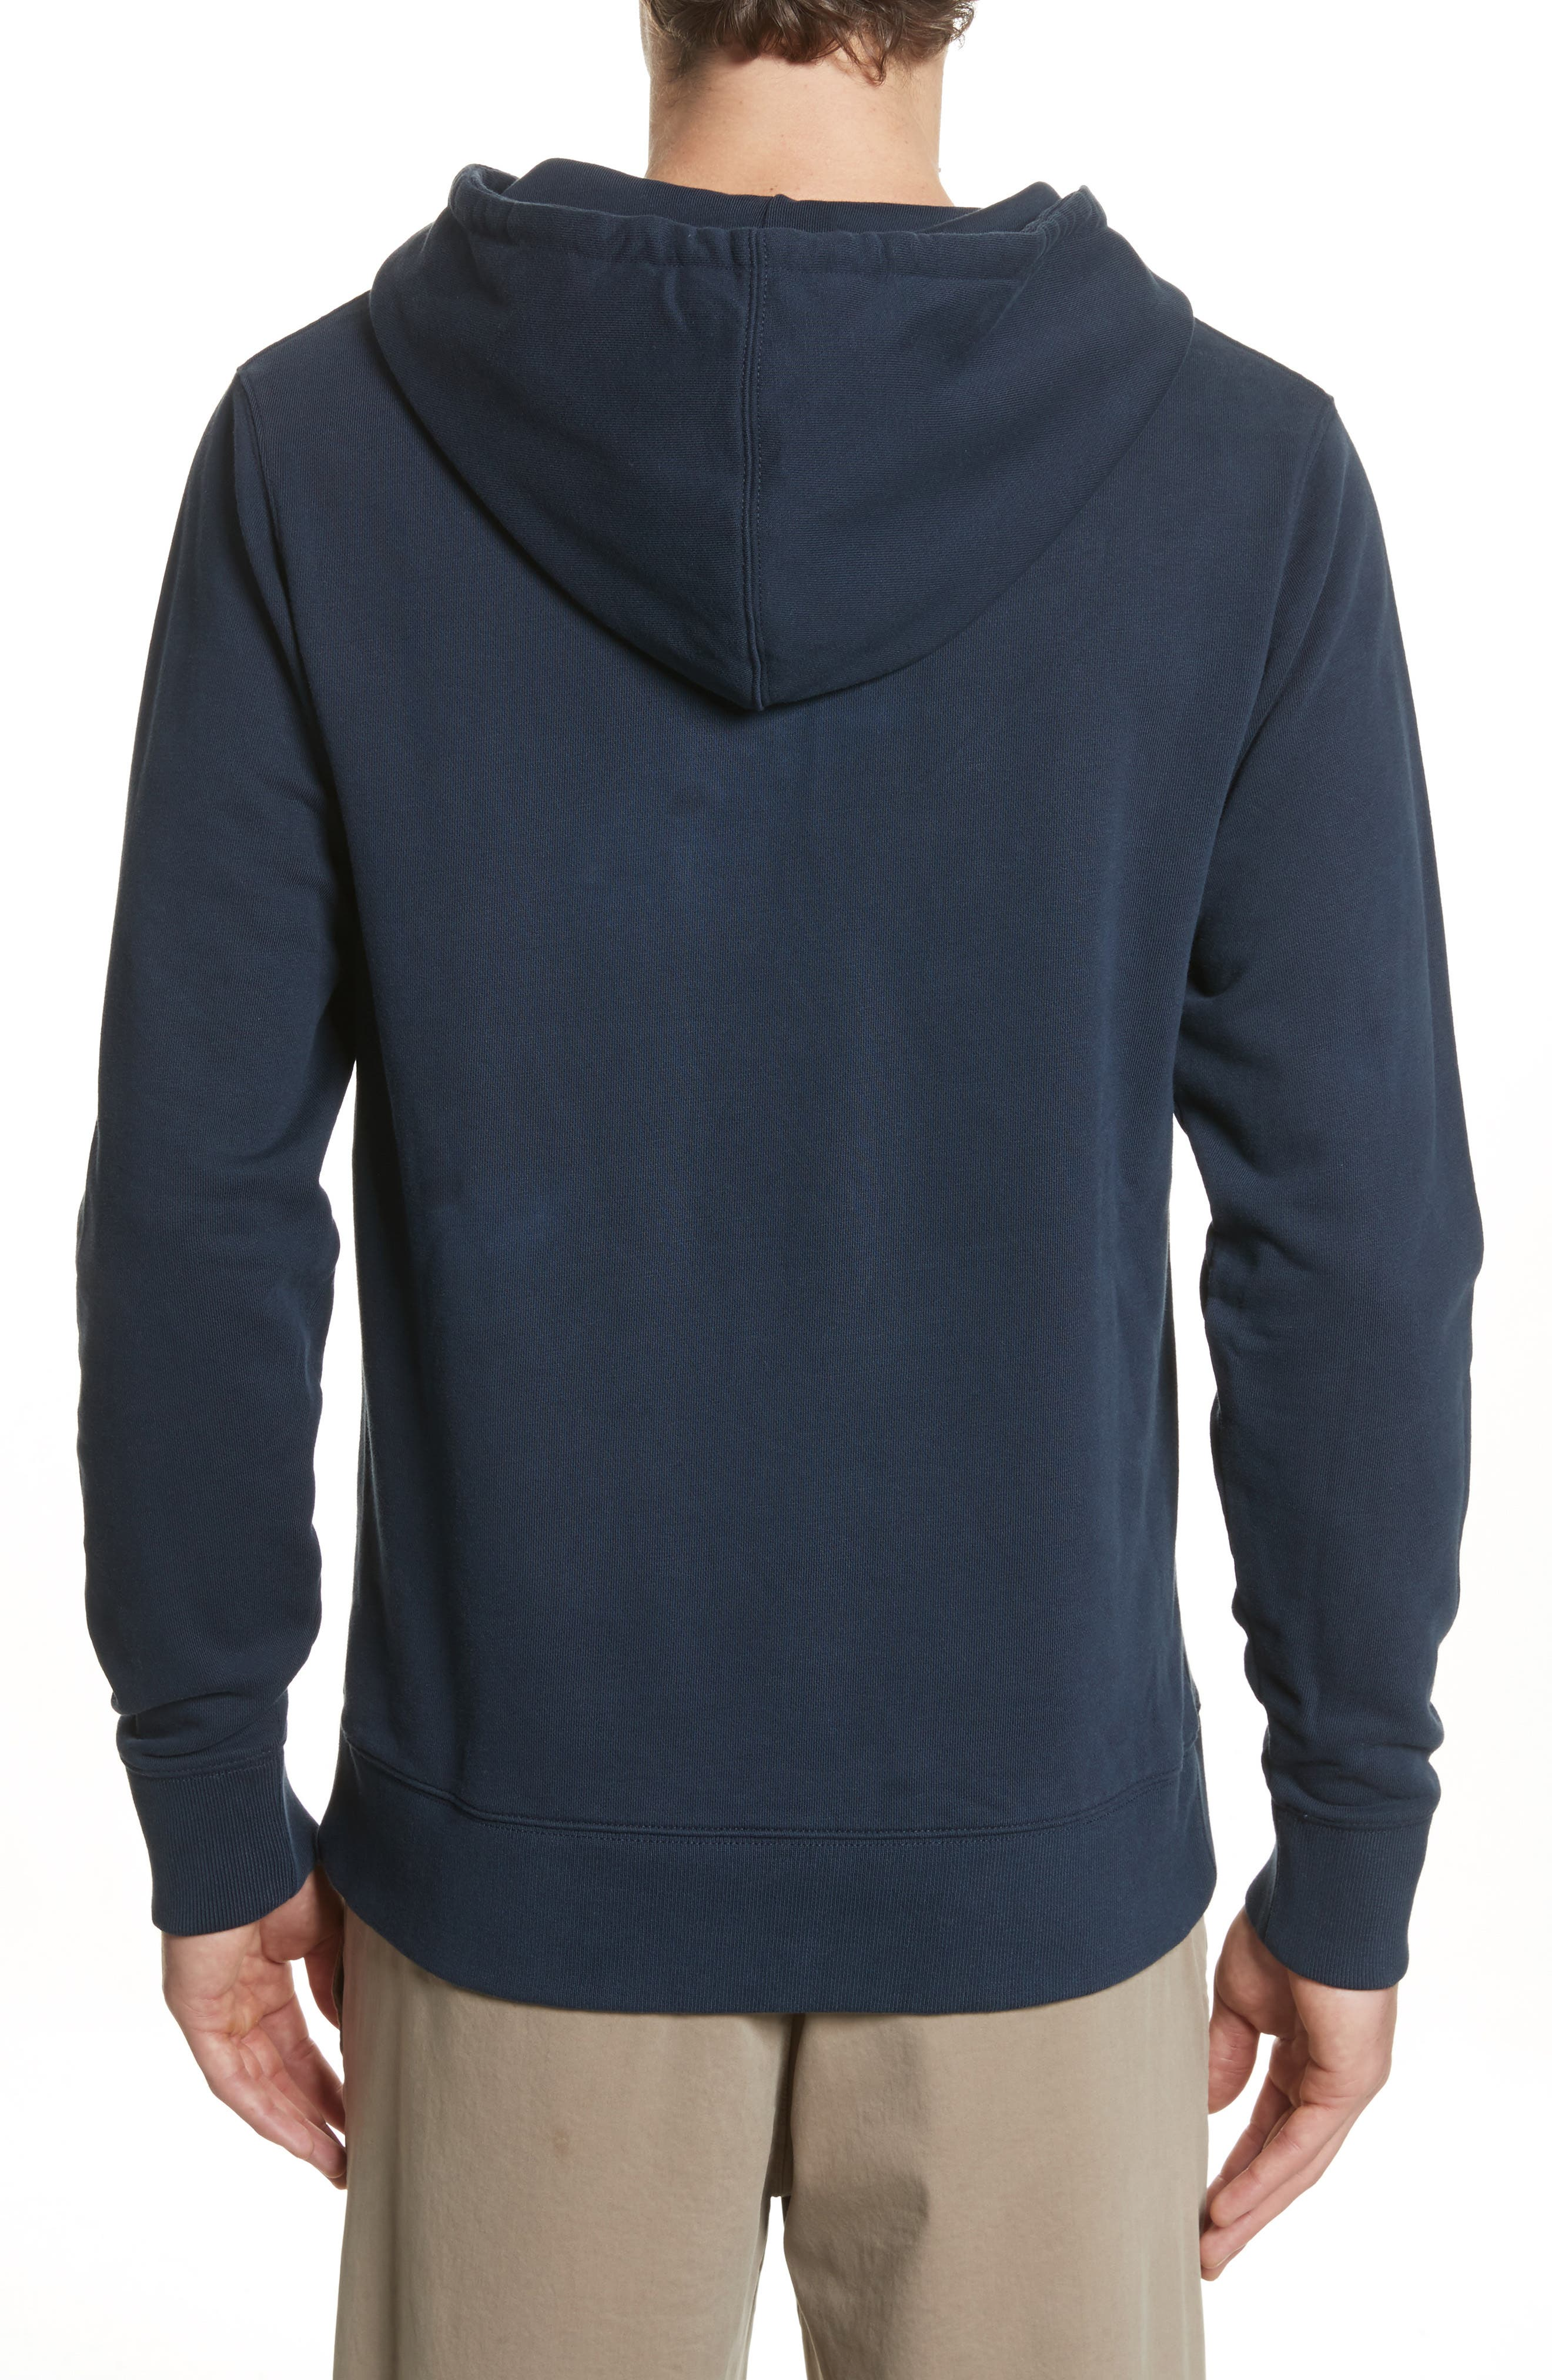 Ditch Miller Hoodie,                             Alternate thumbnail 2, color,                             Midnight